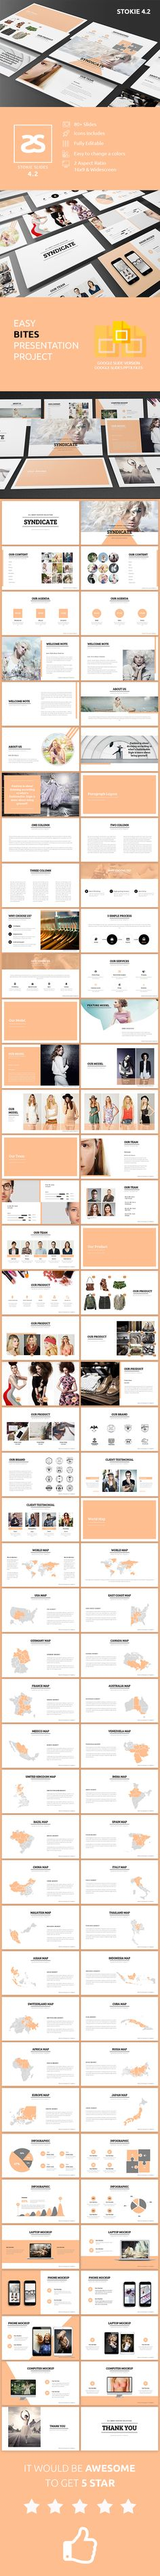 Fashion Google Slide Template 4.2 - Google Slides Presentation Templates